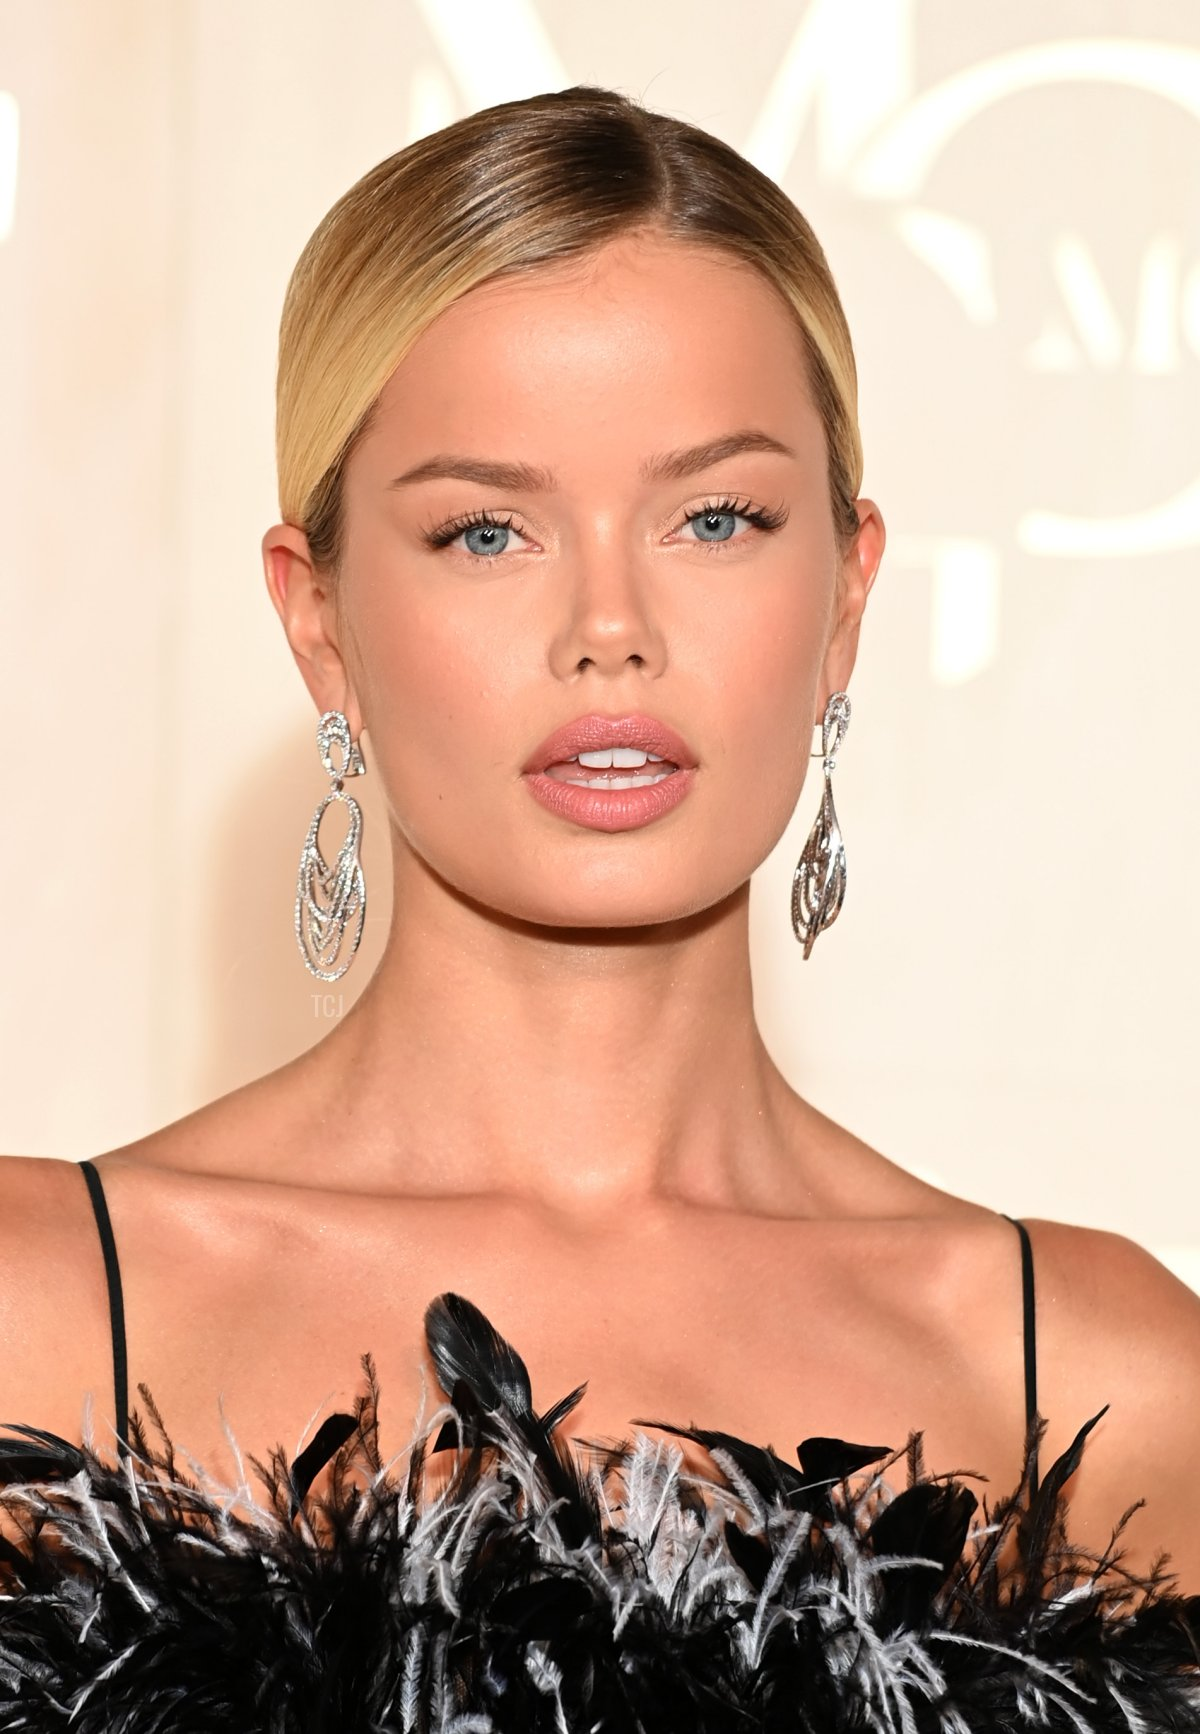 Frida Aasen attends the 5th Monte-Carlo Gala For Planetary Health on September 23, 2021 in Monte-Carlo, Monaco